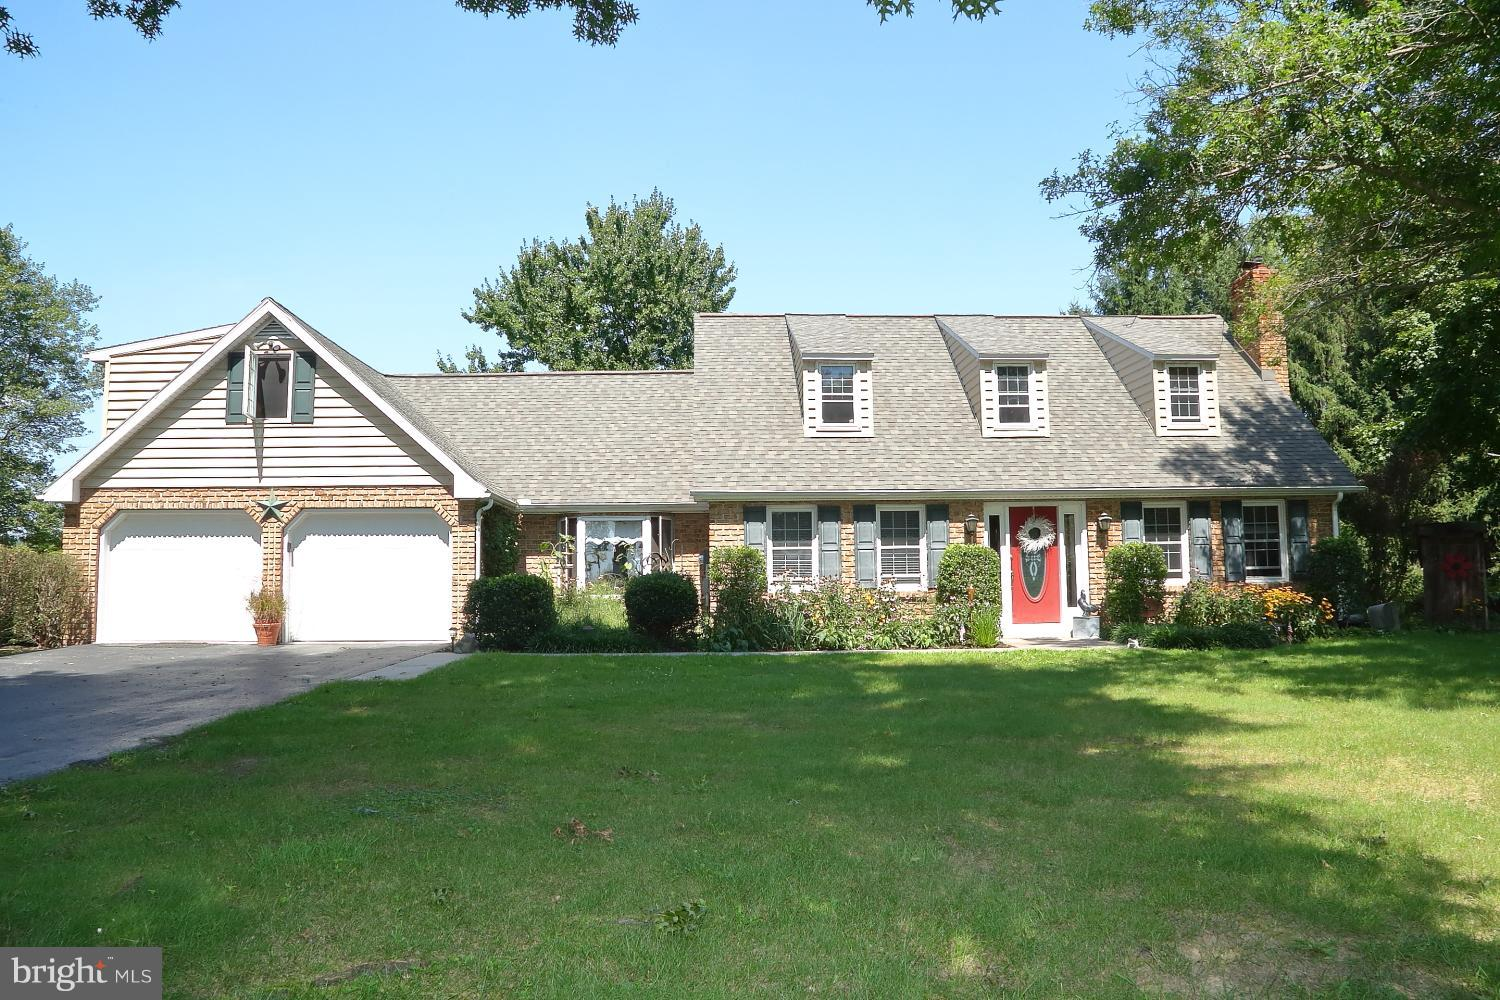 1400 CIDER PRESS ROAD, MANHEIM, PA 17545